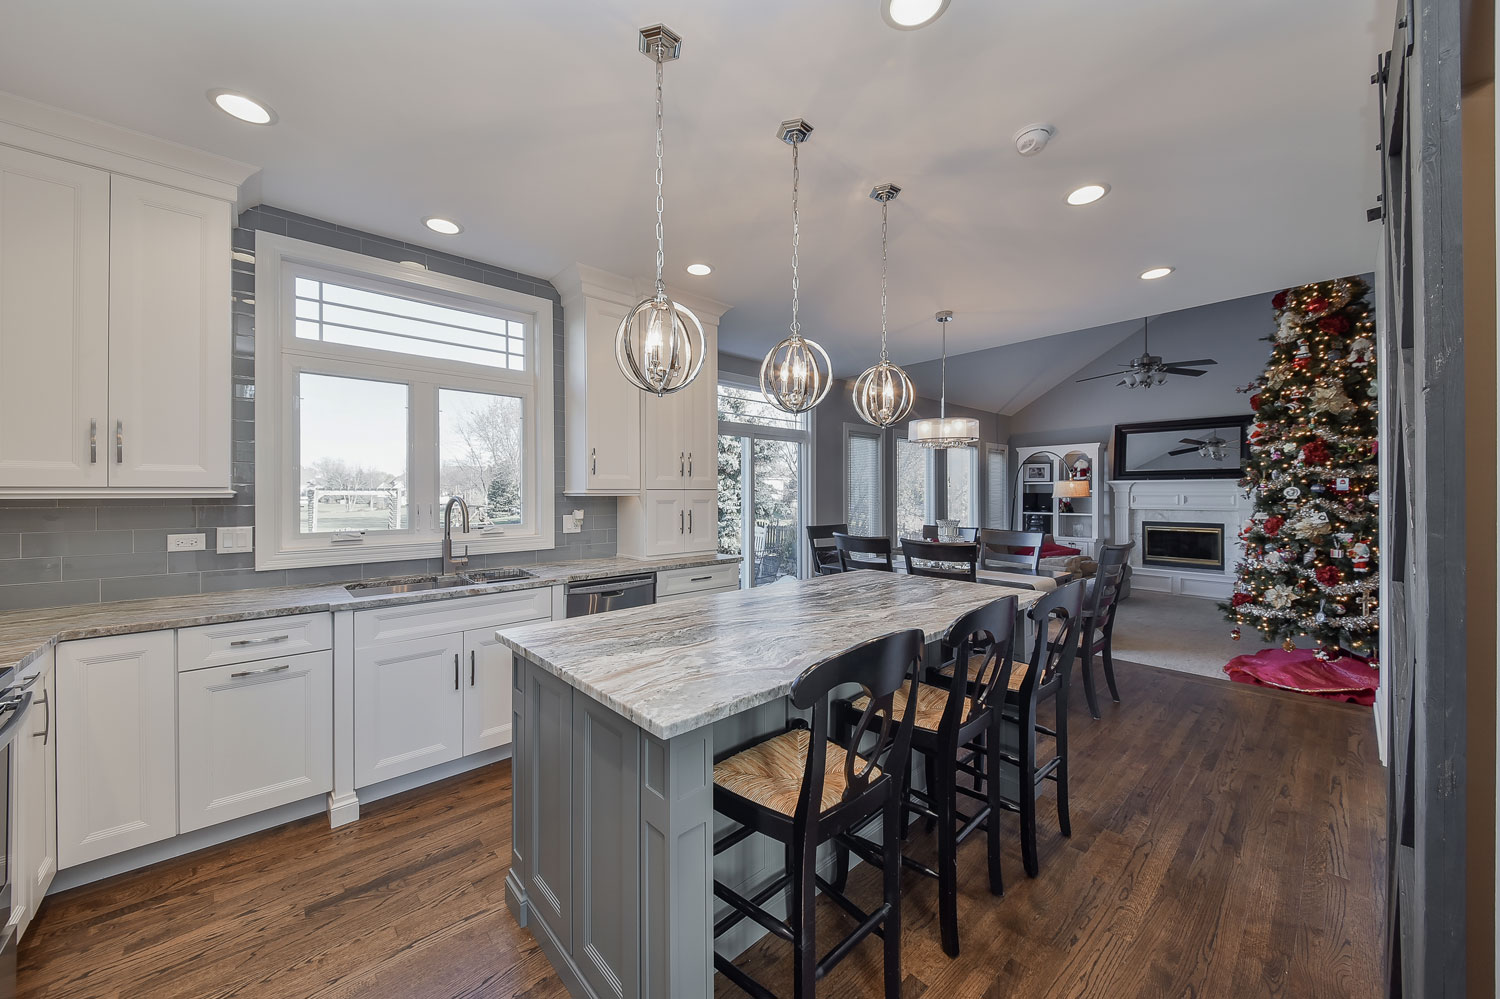 's Naperville Kitchen Remodel Pictures, Featuring White Quartz Countertops - Sebring Design Build